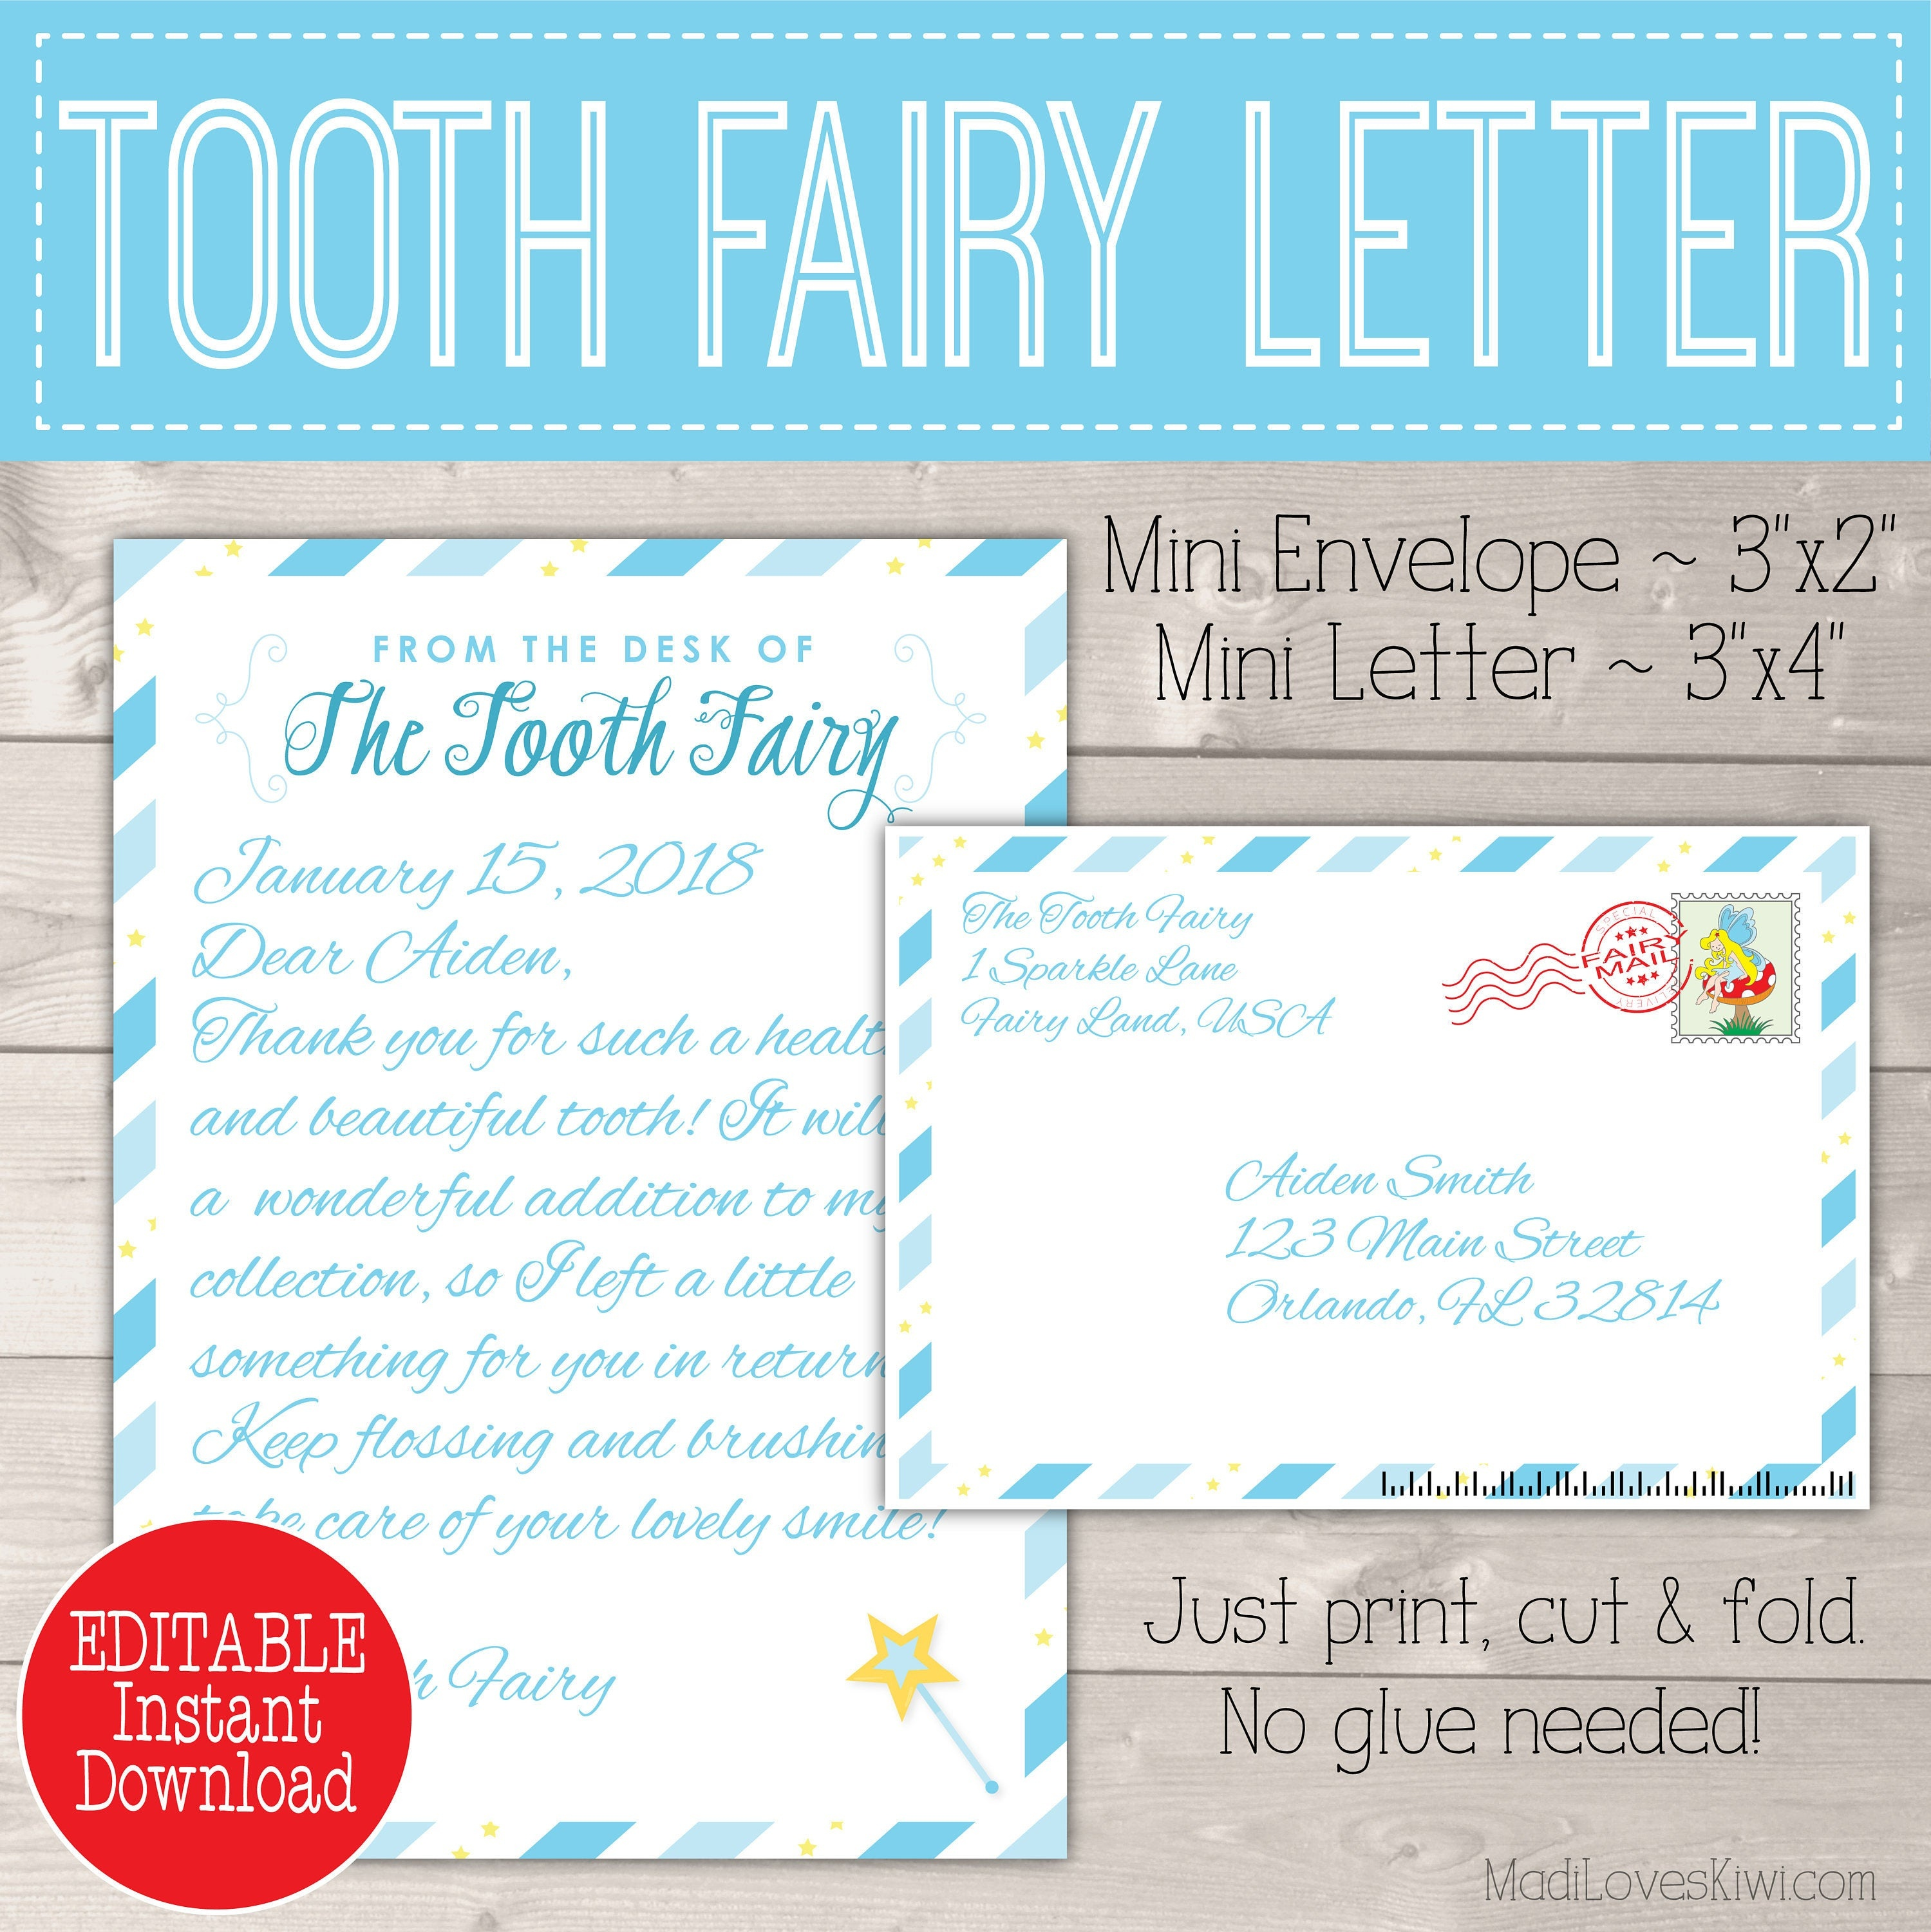 Personalized Tooth Fairy Letter Kit Boy Printable Download   Etsy - Tooth Fairy Stationery Free Printable